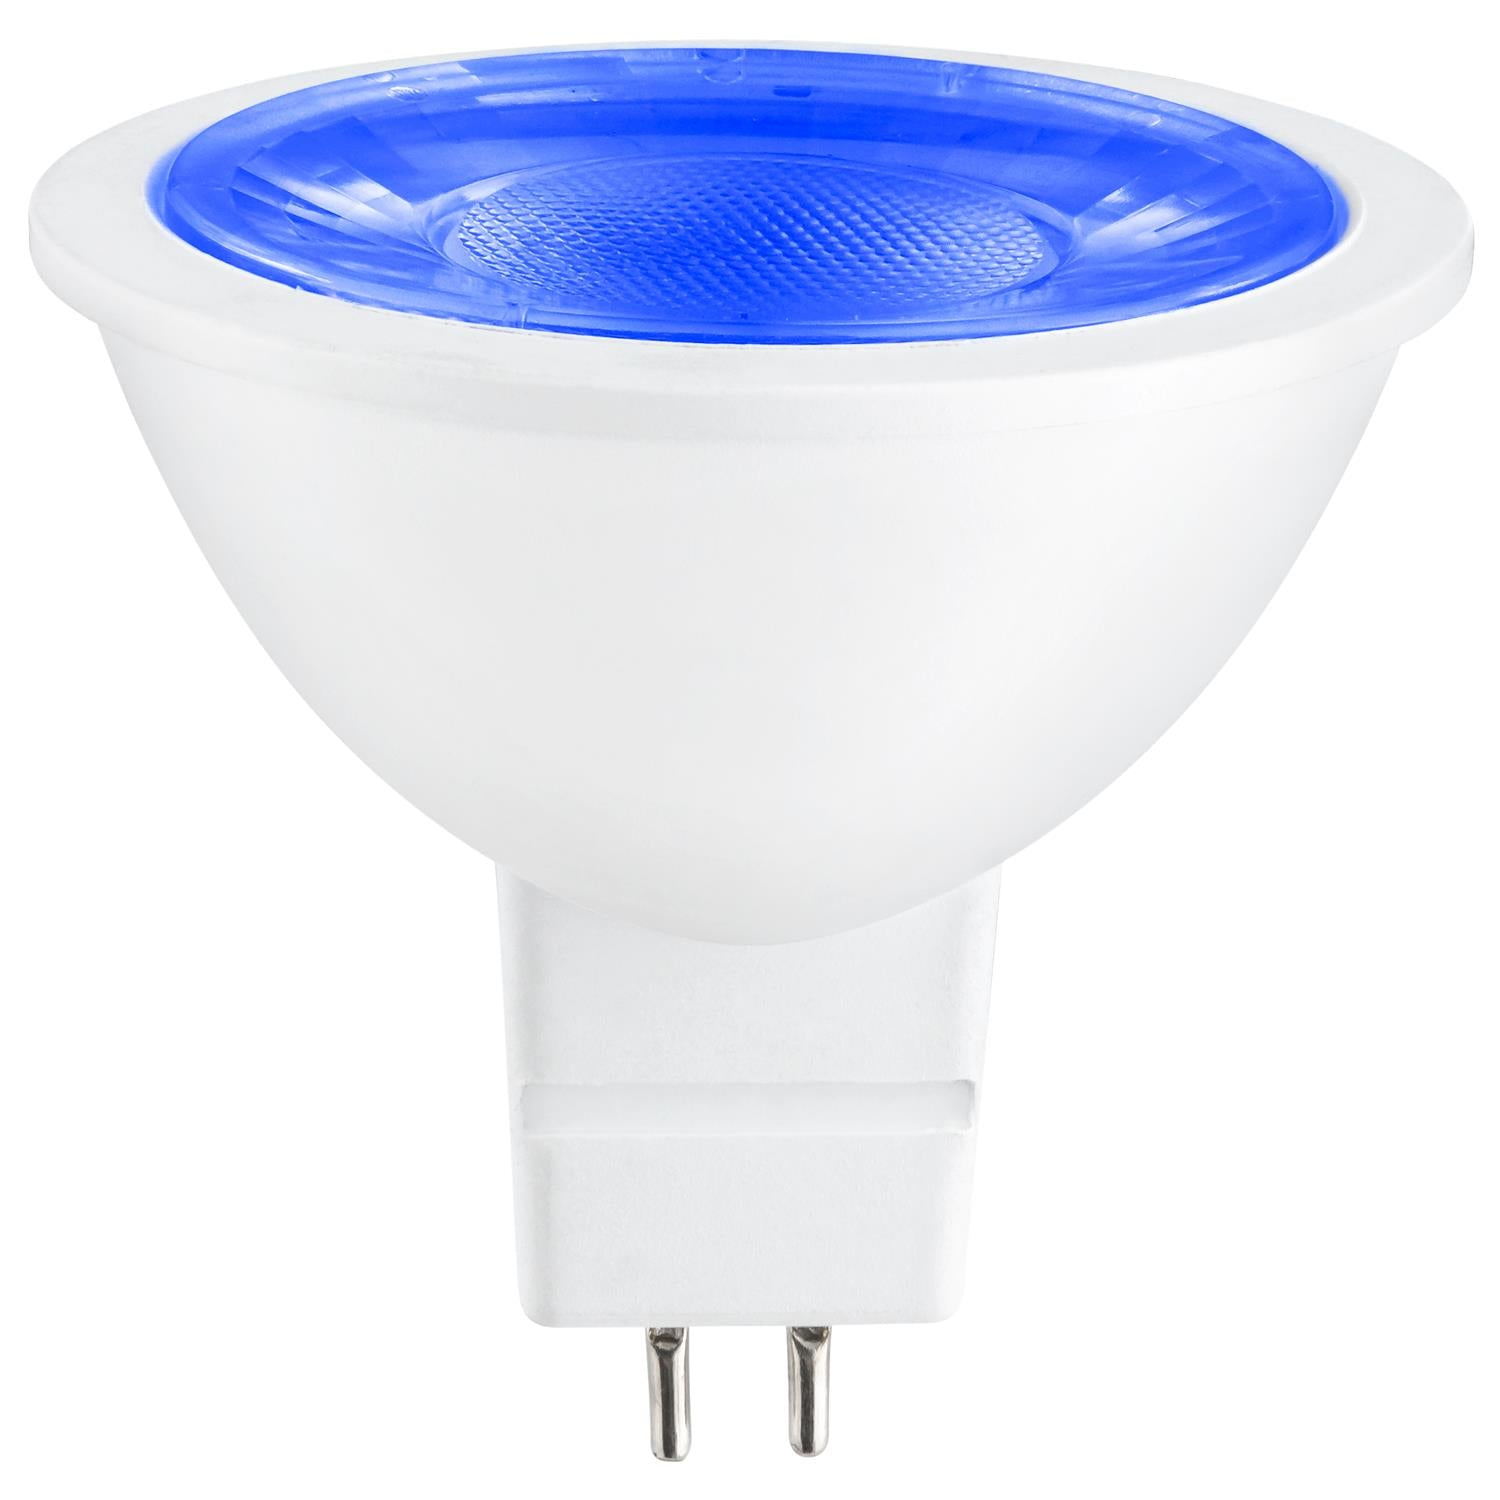 SUNLITE 3w 12v LED MR16 GU5.3 25-Watt Equivalent Blue Light Bulb